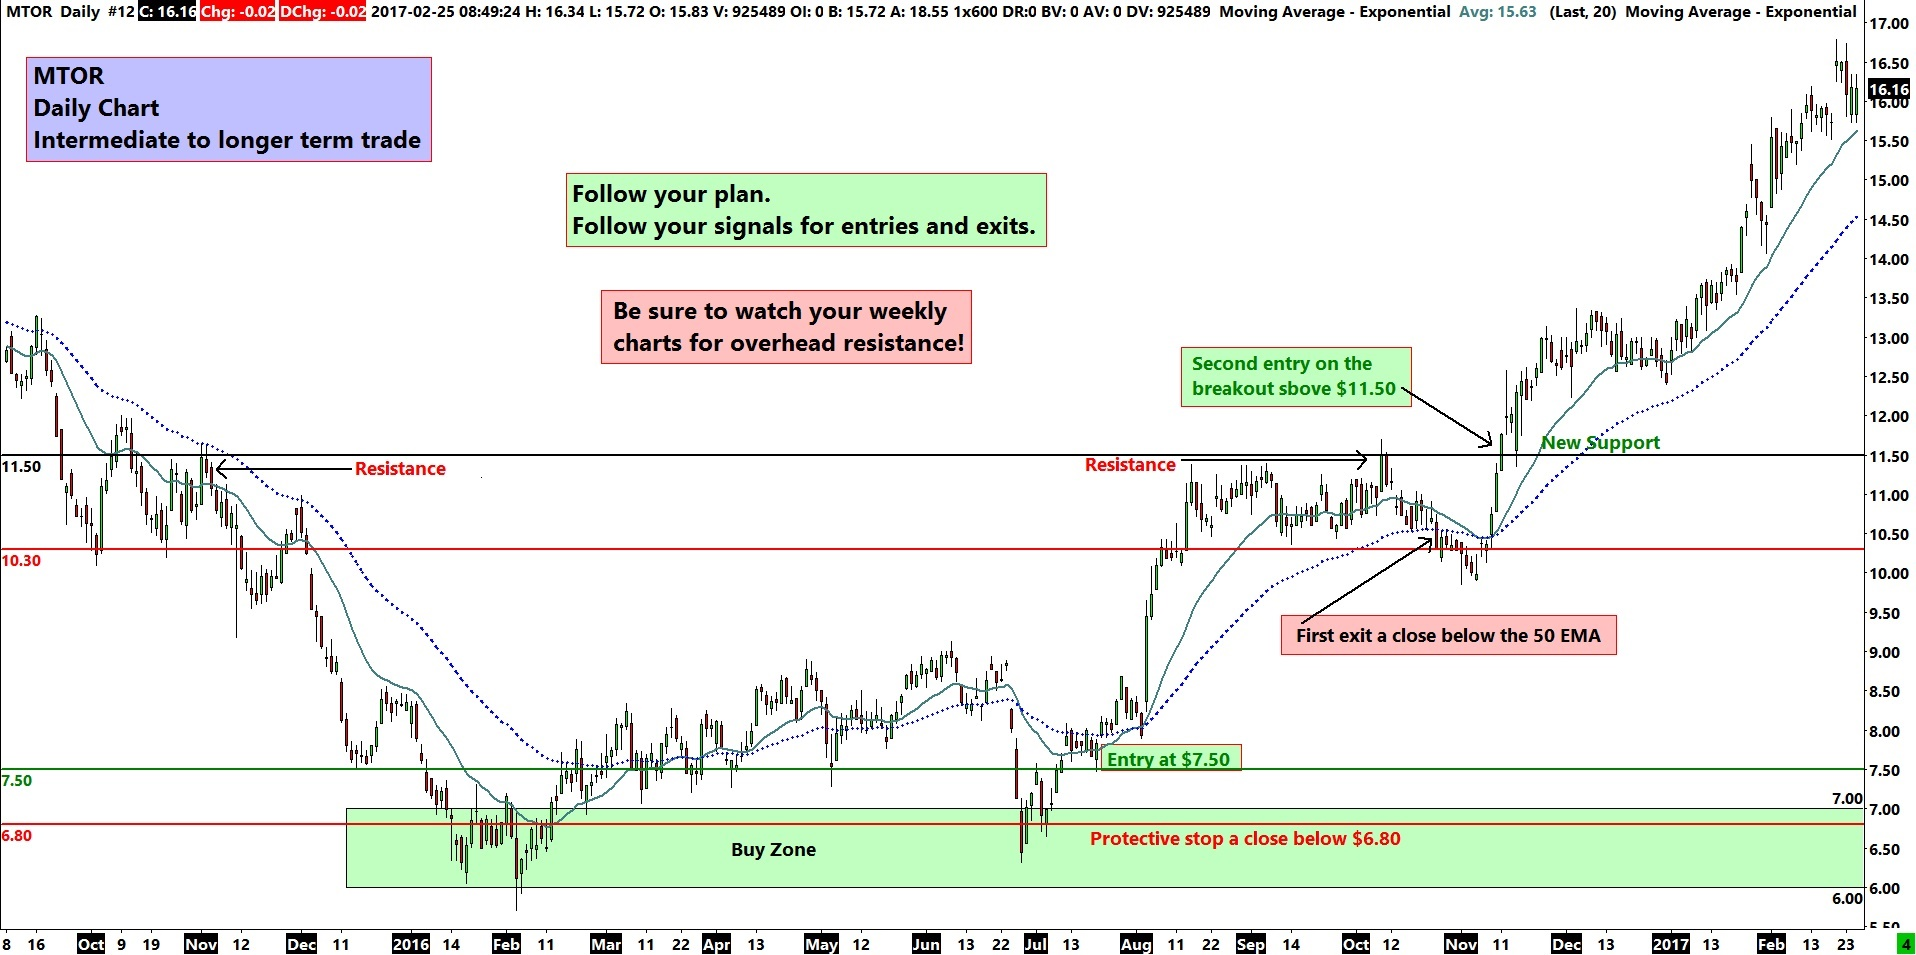 MTOR Daily Chart - Intermediate to Longer Term Trade